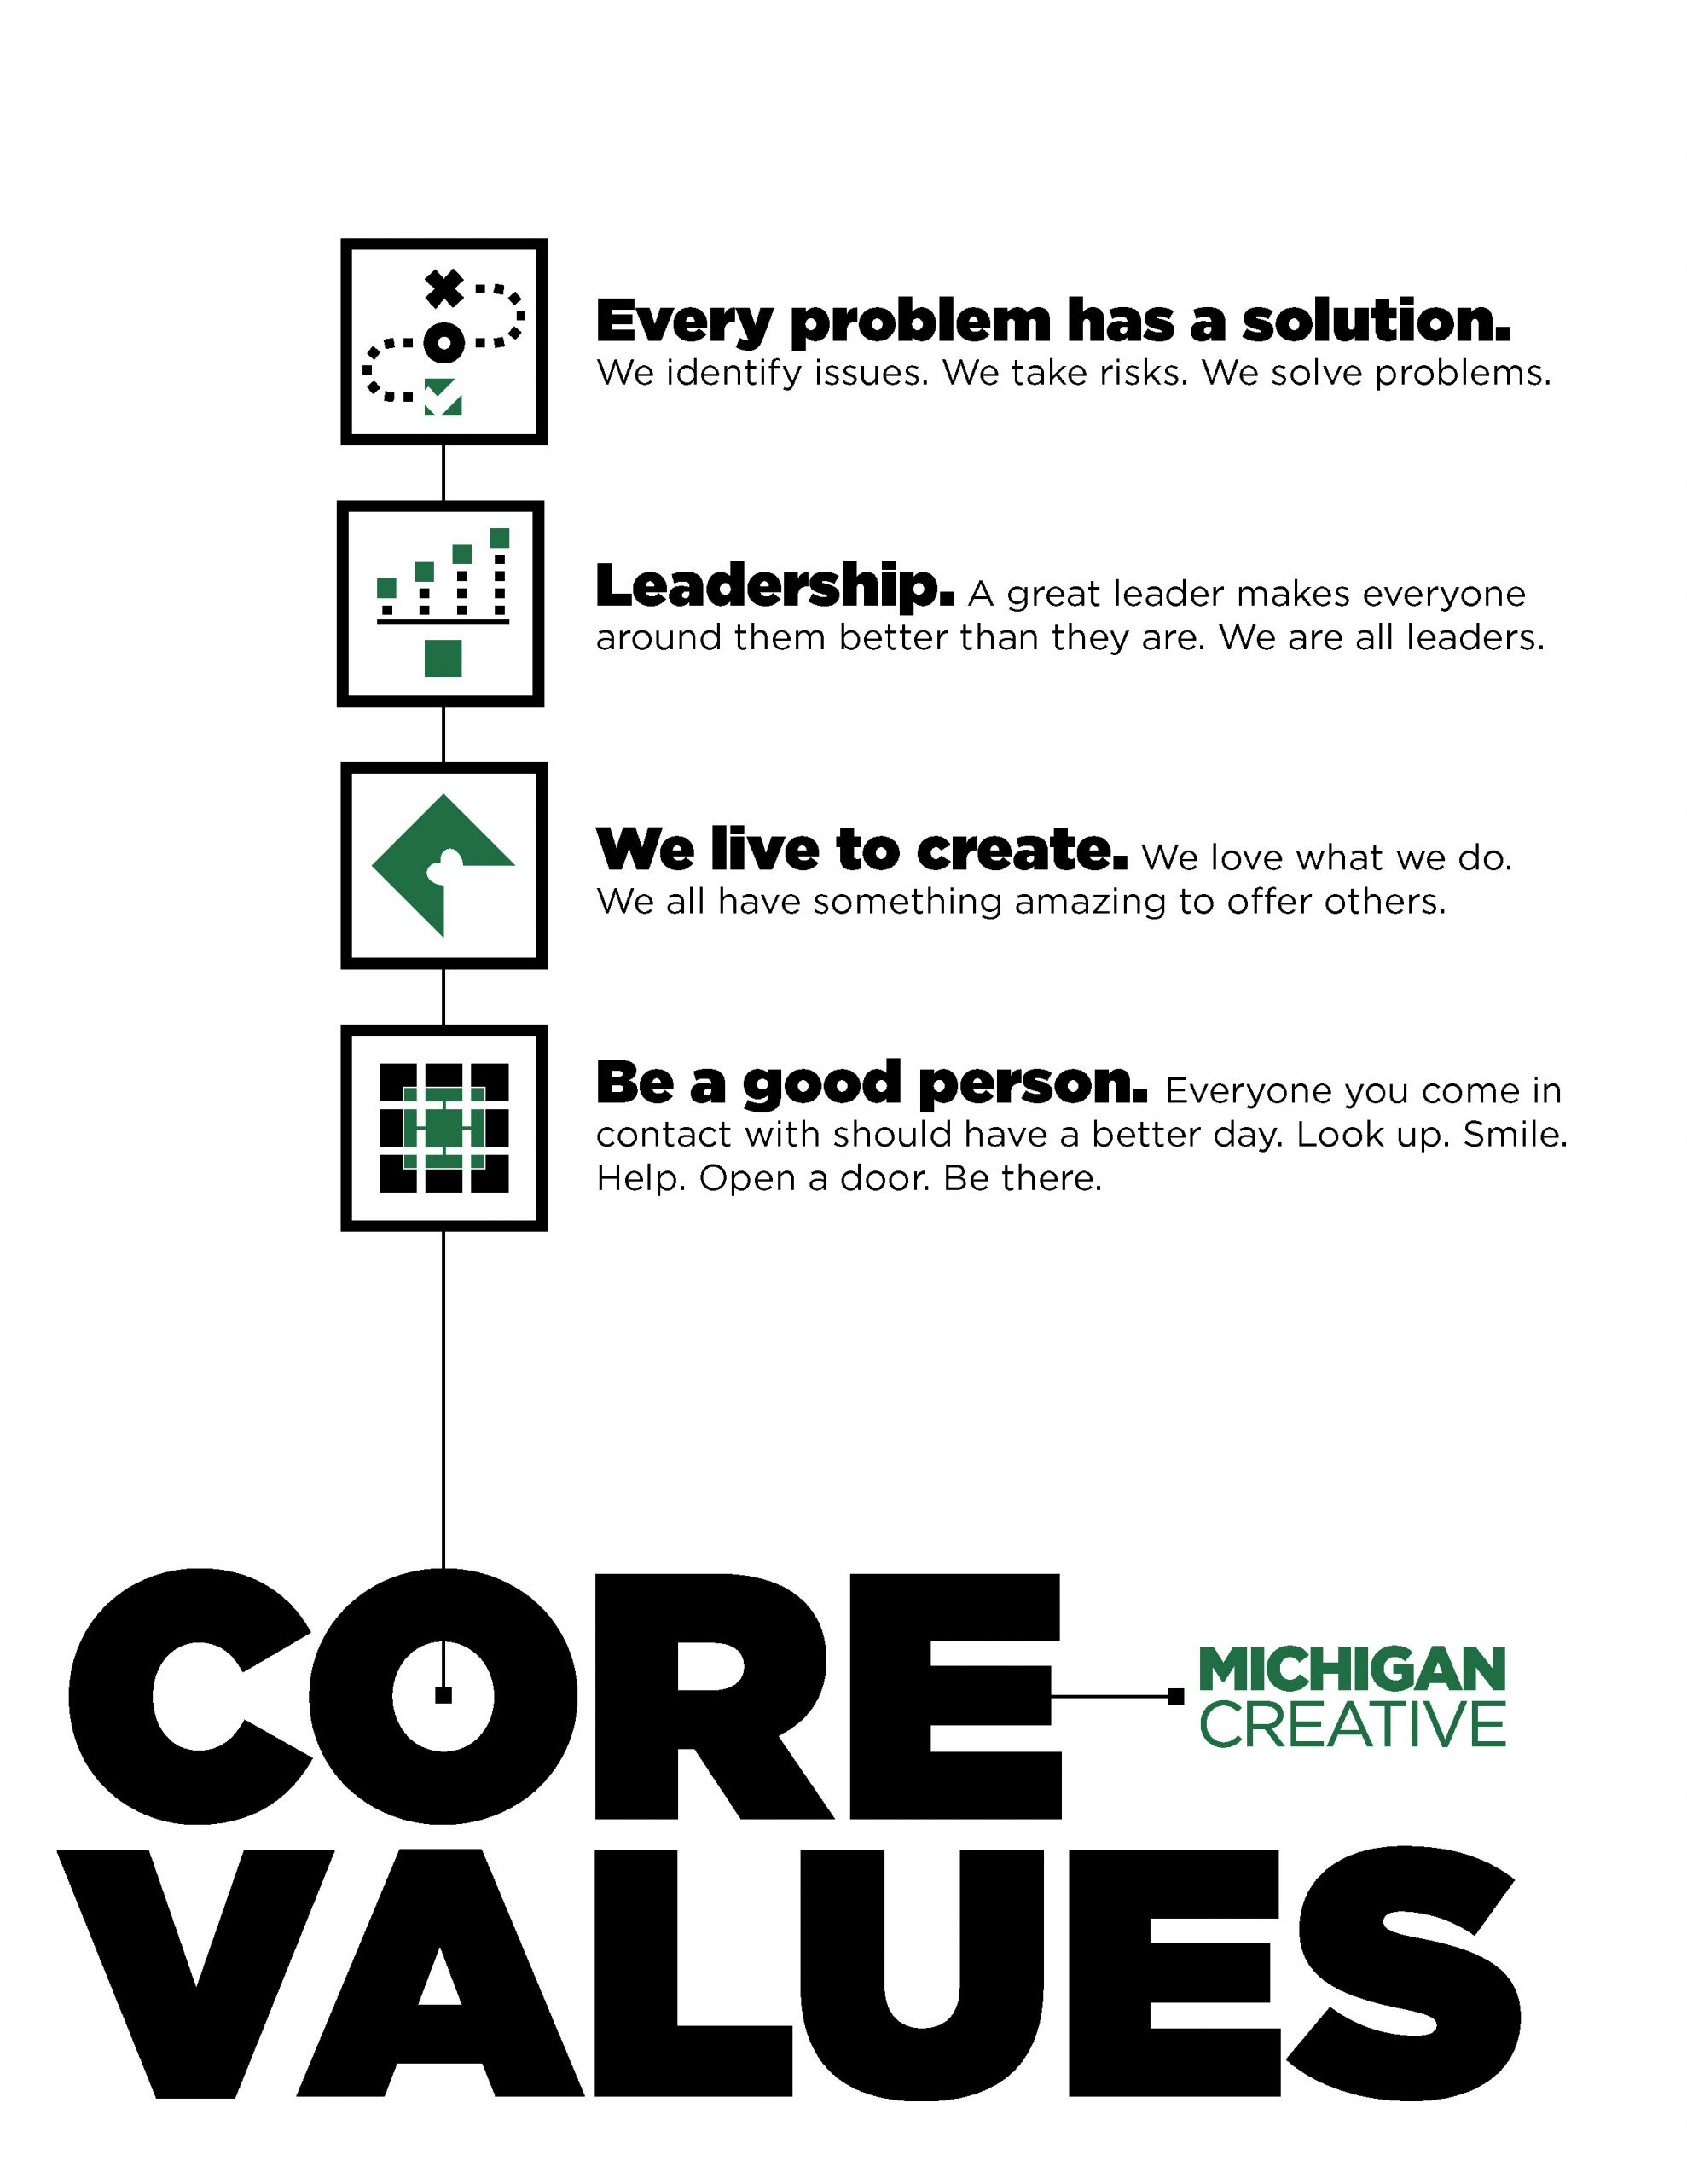 core values are what drive us as Our core values are what drive our team and business